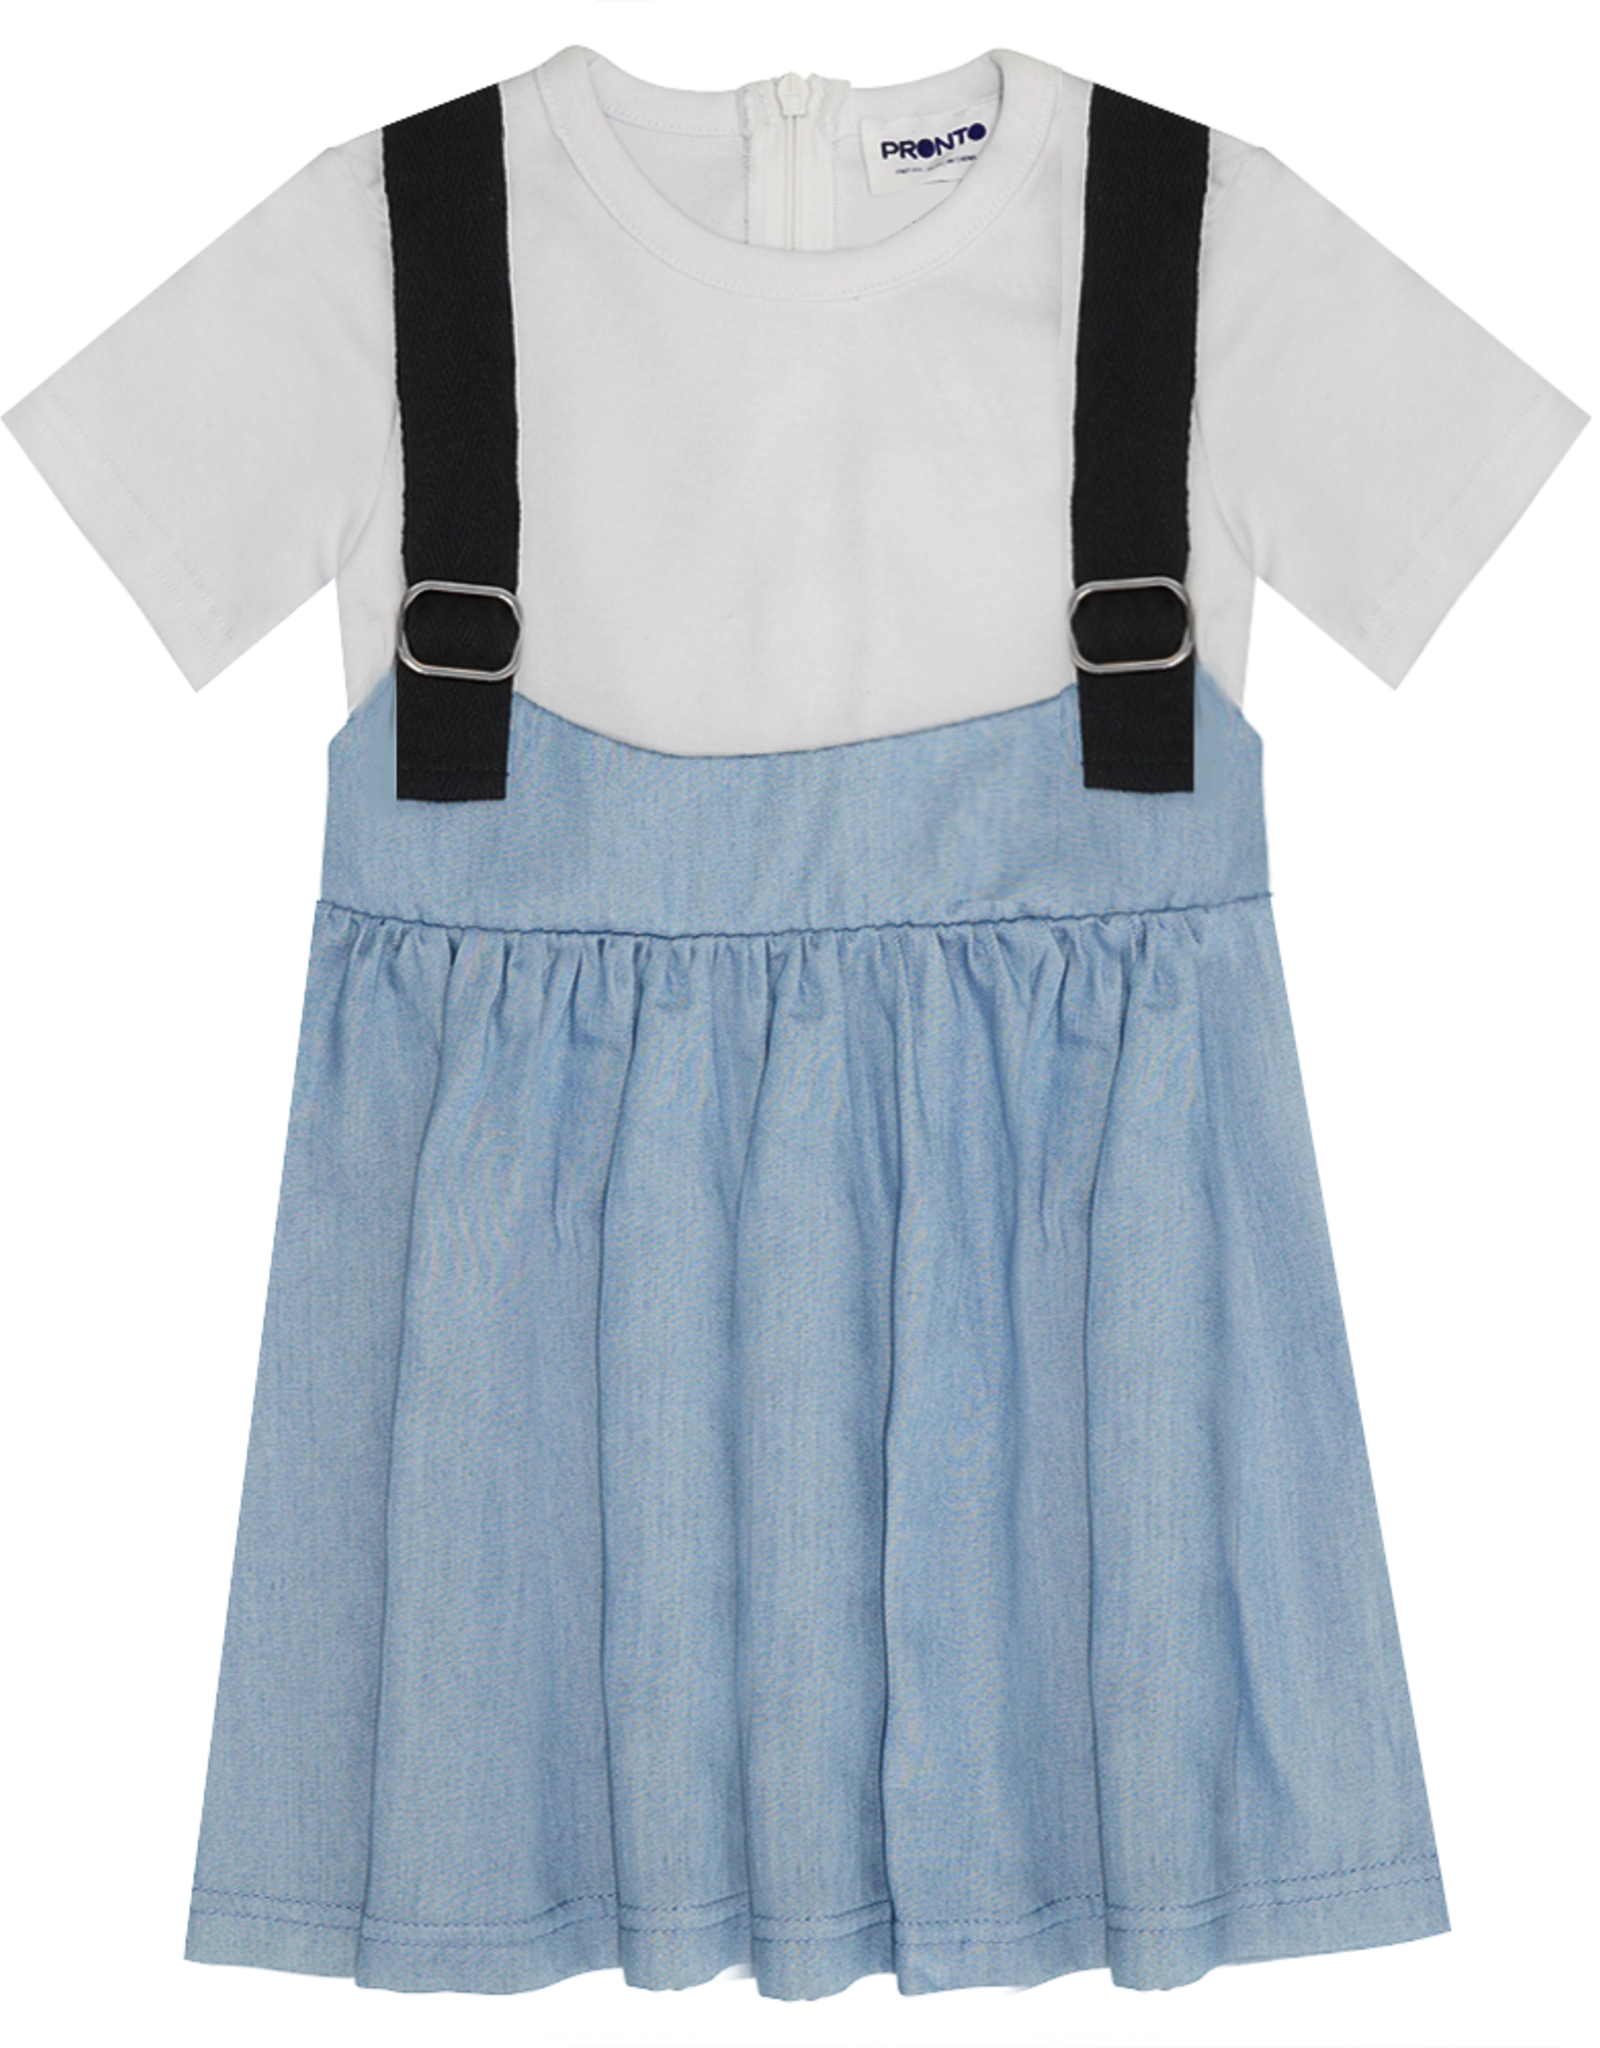 Pronto Pronto Overall Skirt with T-Shirt